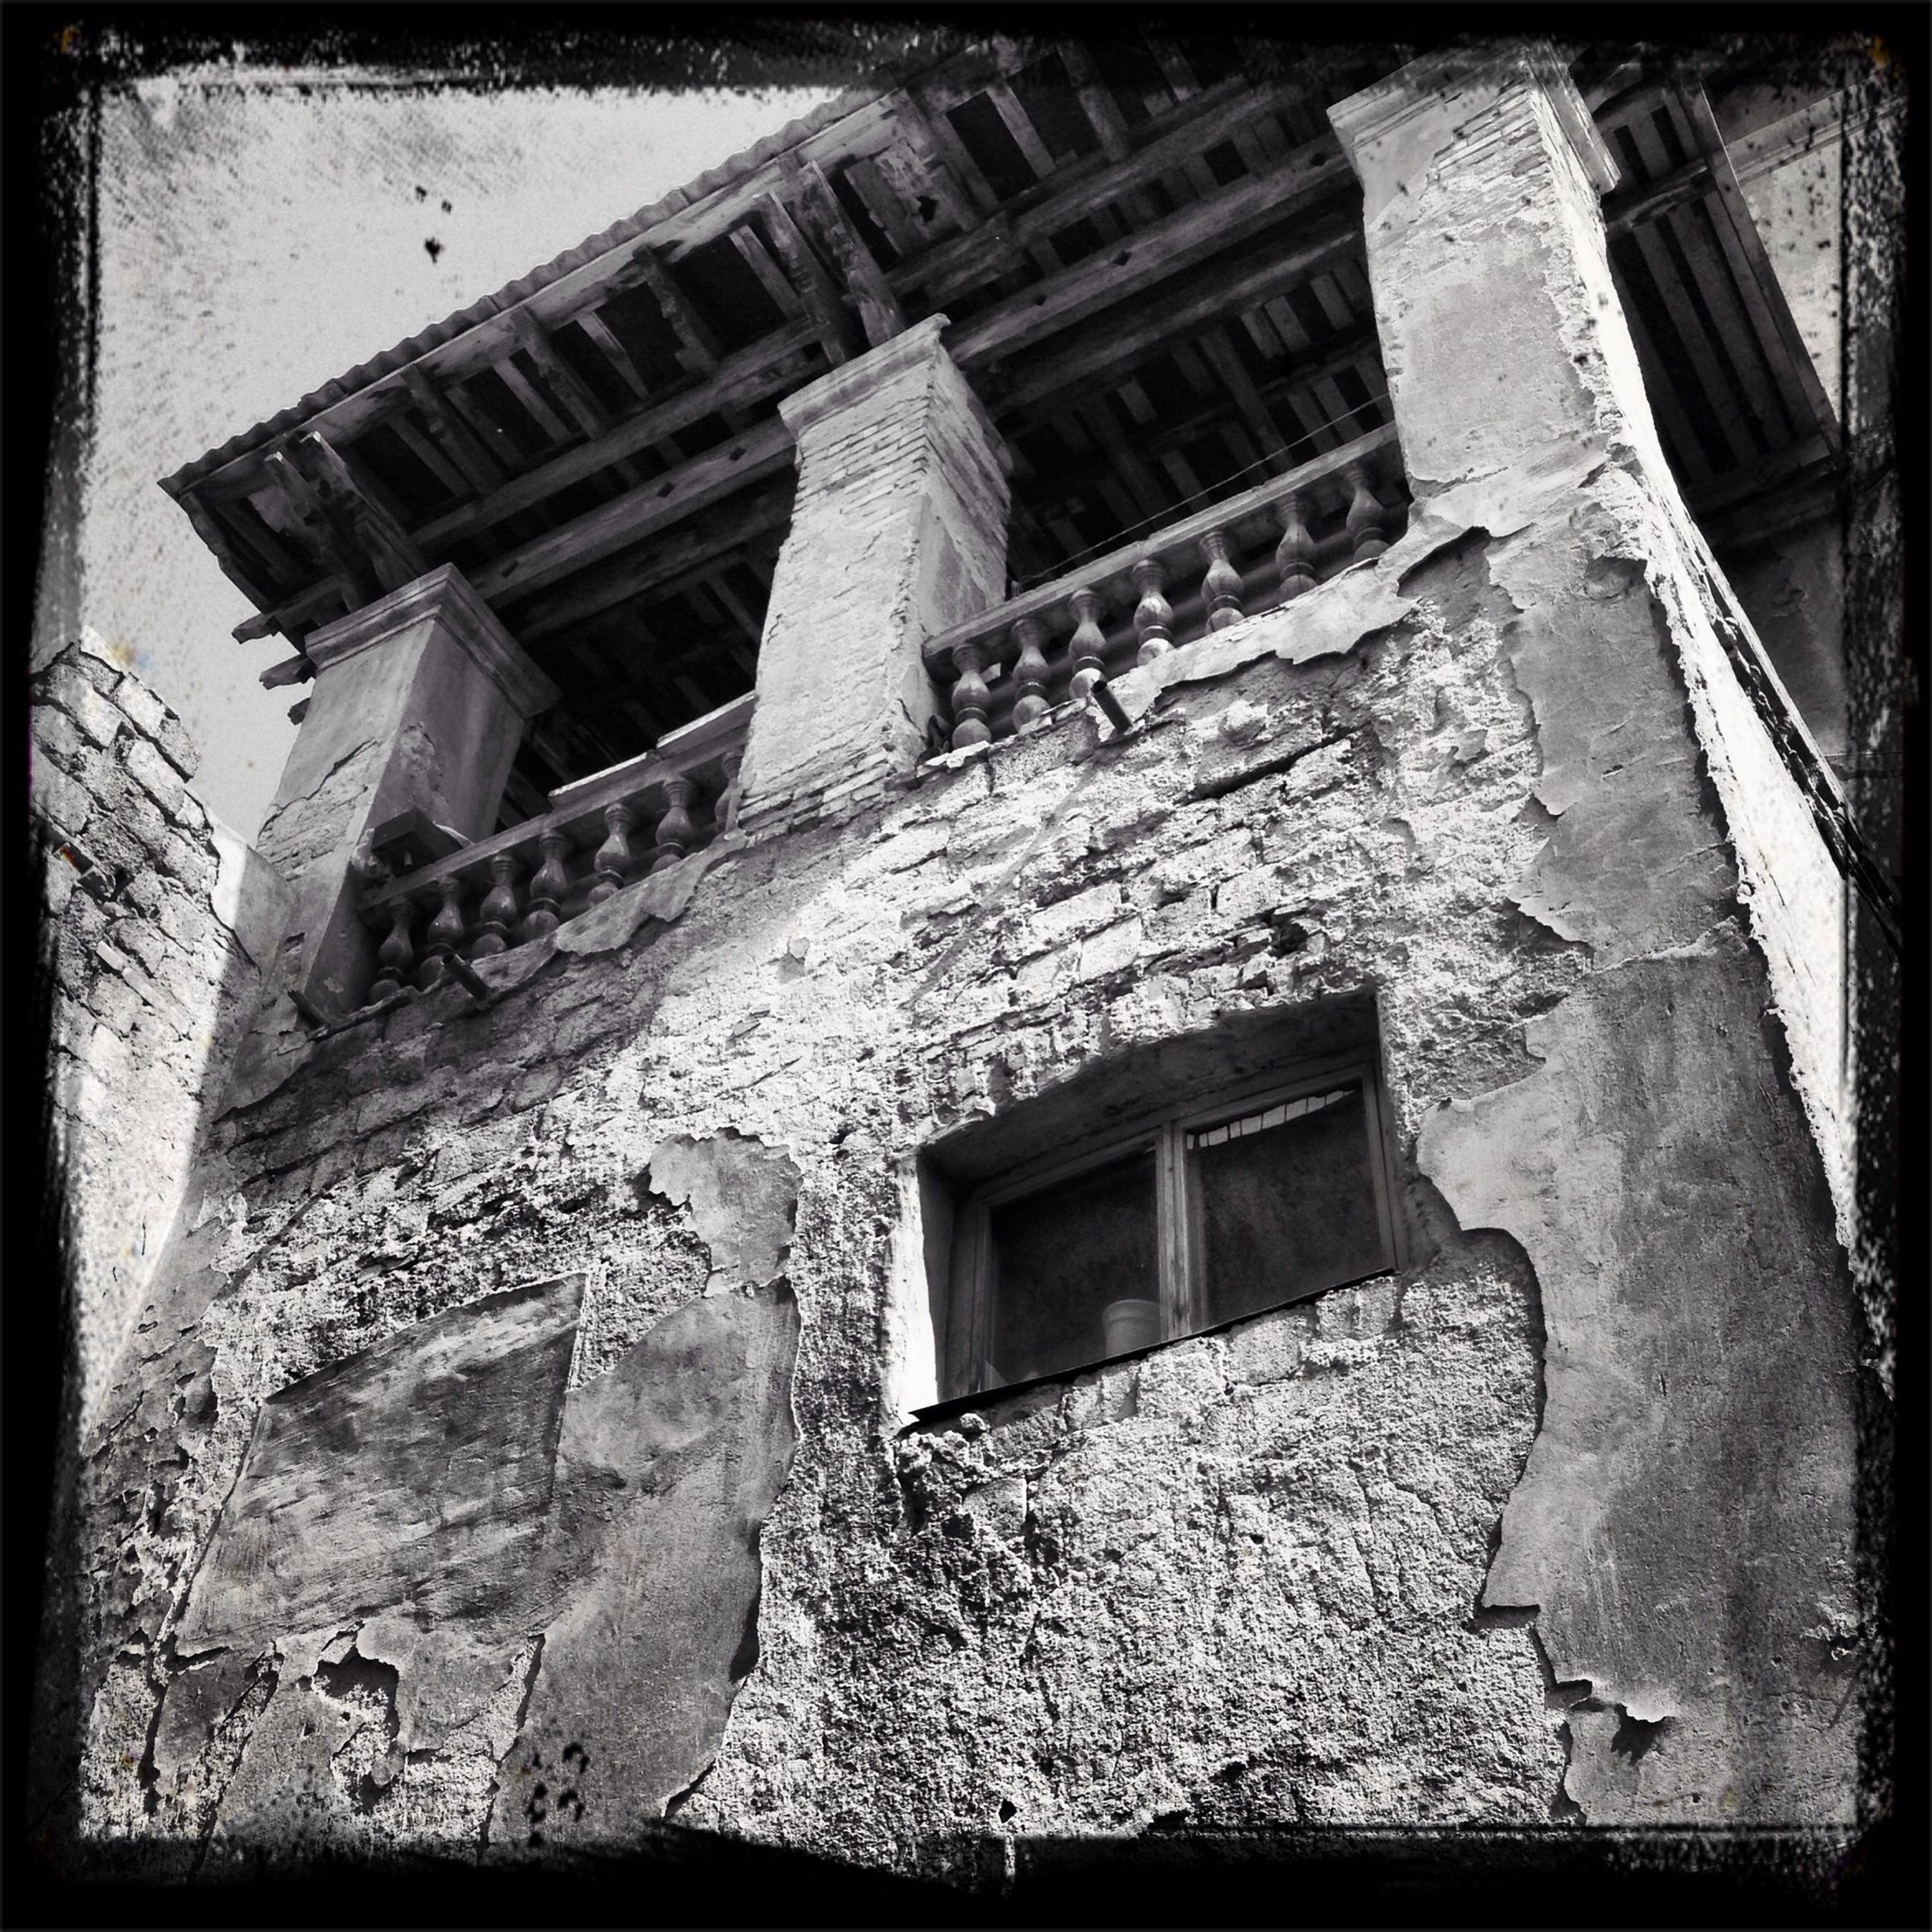 architecture, built structure, building exterior, low angle view, old, window, transfer print, abandoned, auto post production filter, house, history, damaged, weathered, building, old ruin, run-down, exterior, residential structure, obsolete, the past